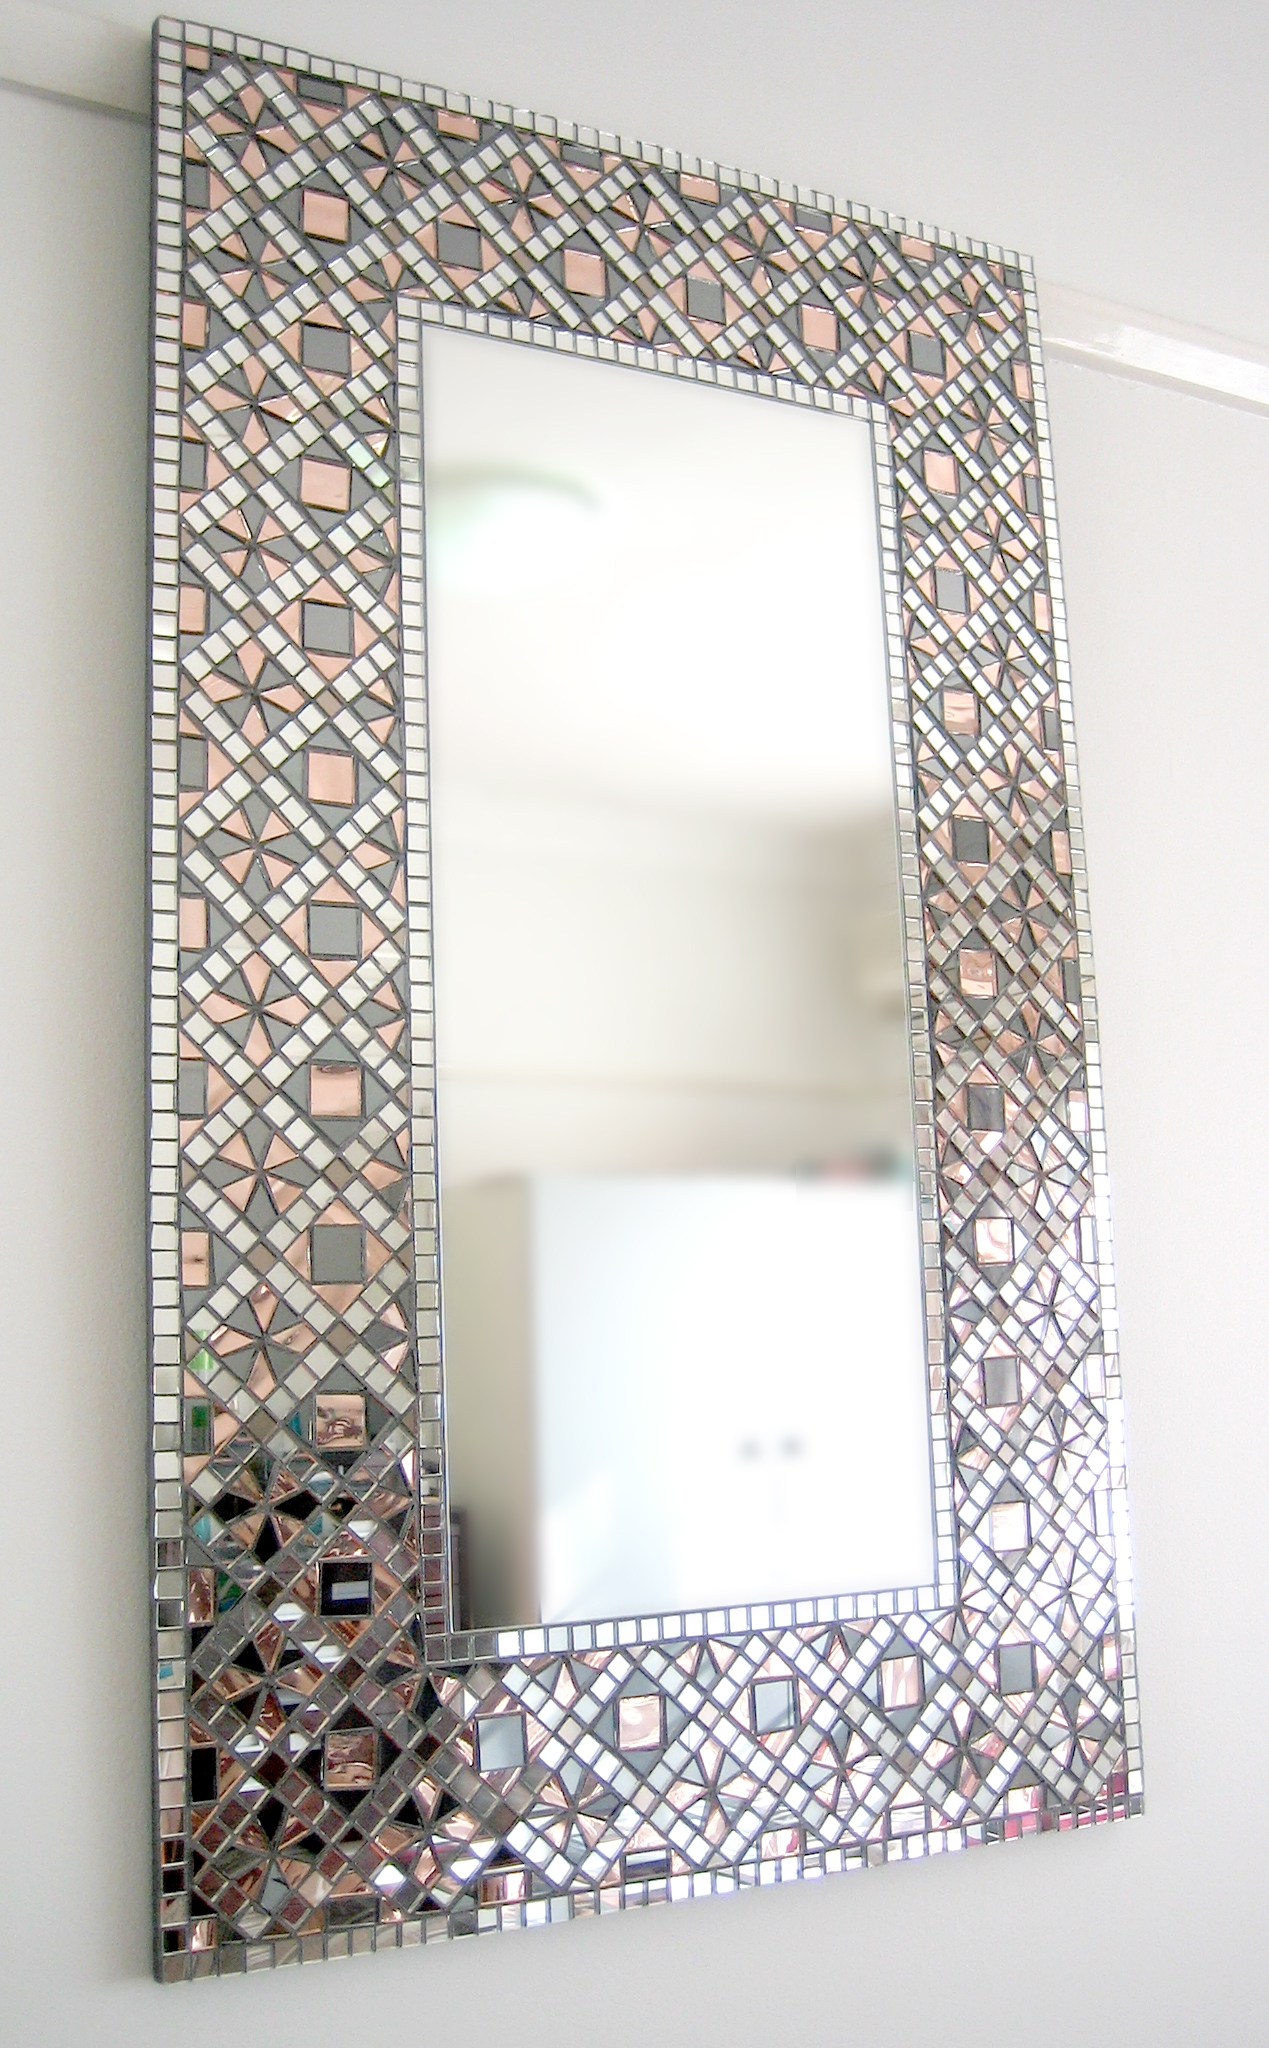 Mosaic Mirror White Forest Pinteres Throughout Mosaic Mirrors For Sale (Image 12 of 15)